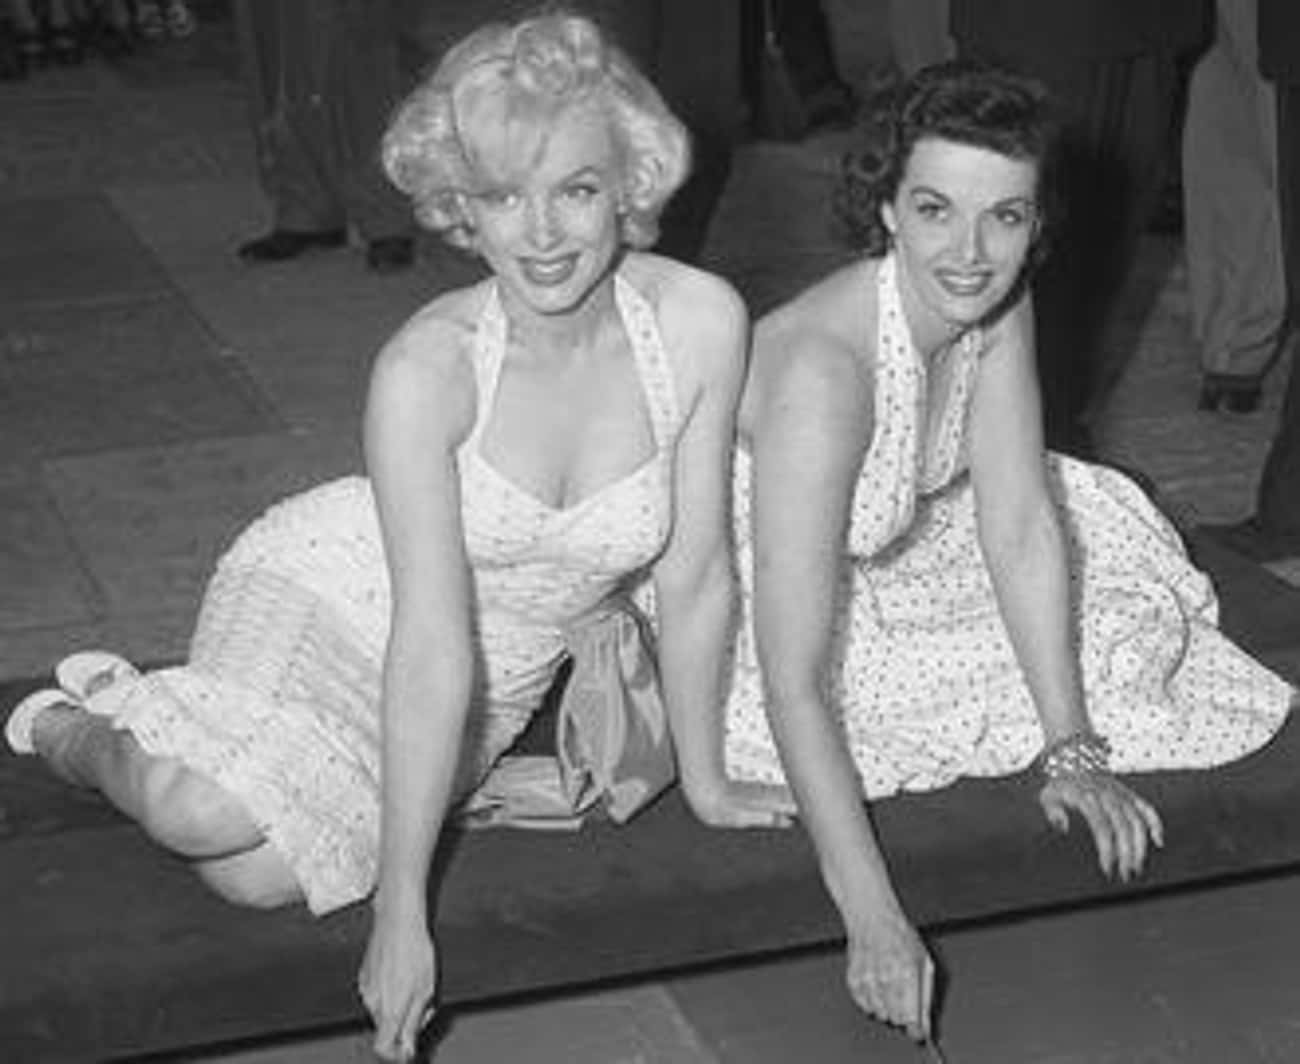 Marilyn Monroe Died From A Nembutal Overdose But No Pills Were Found In Her Stomach